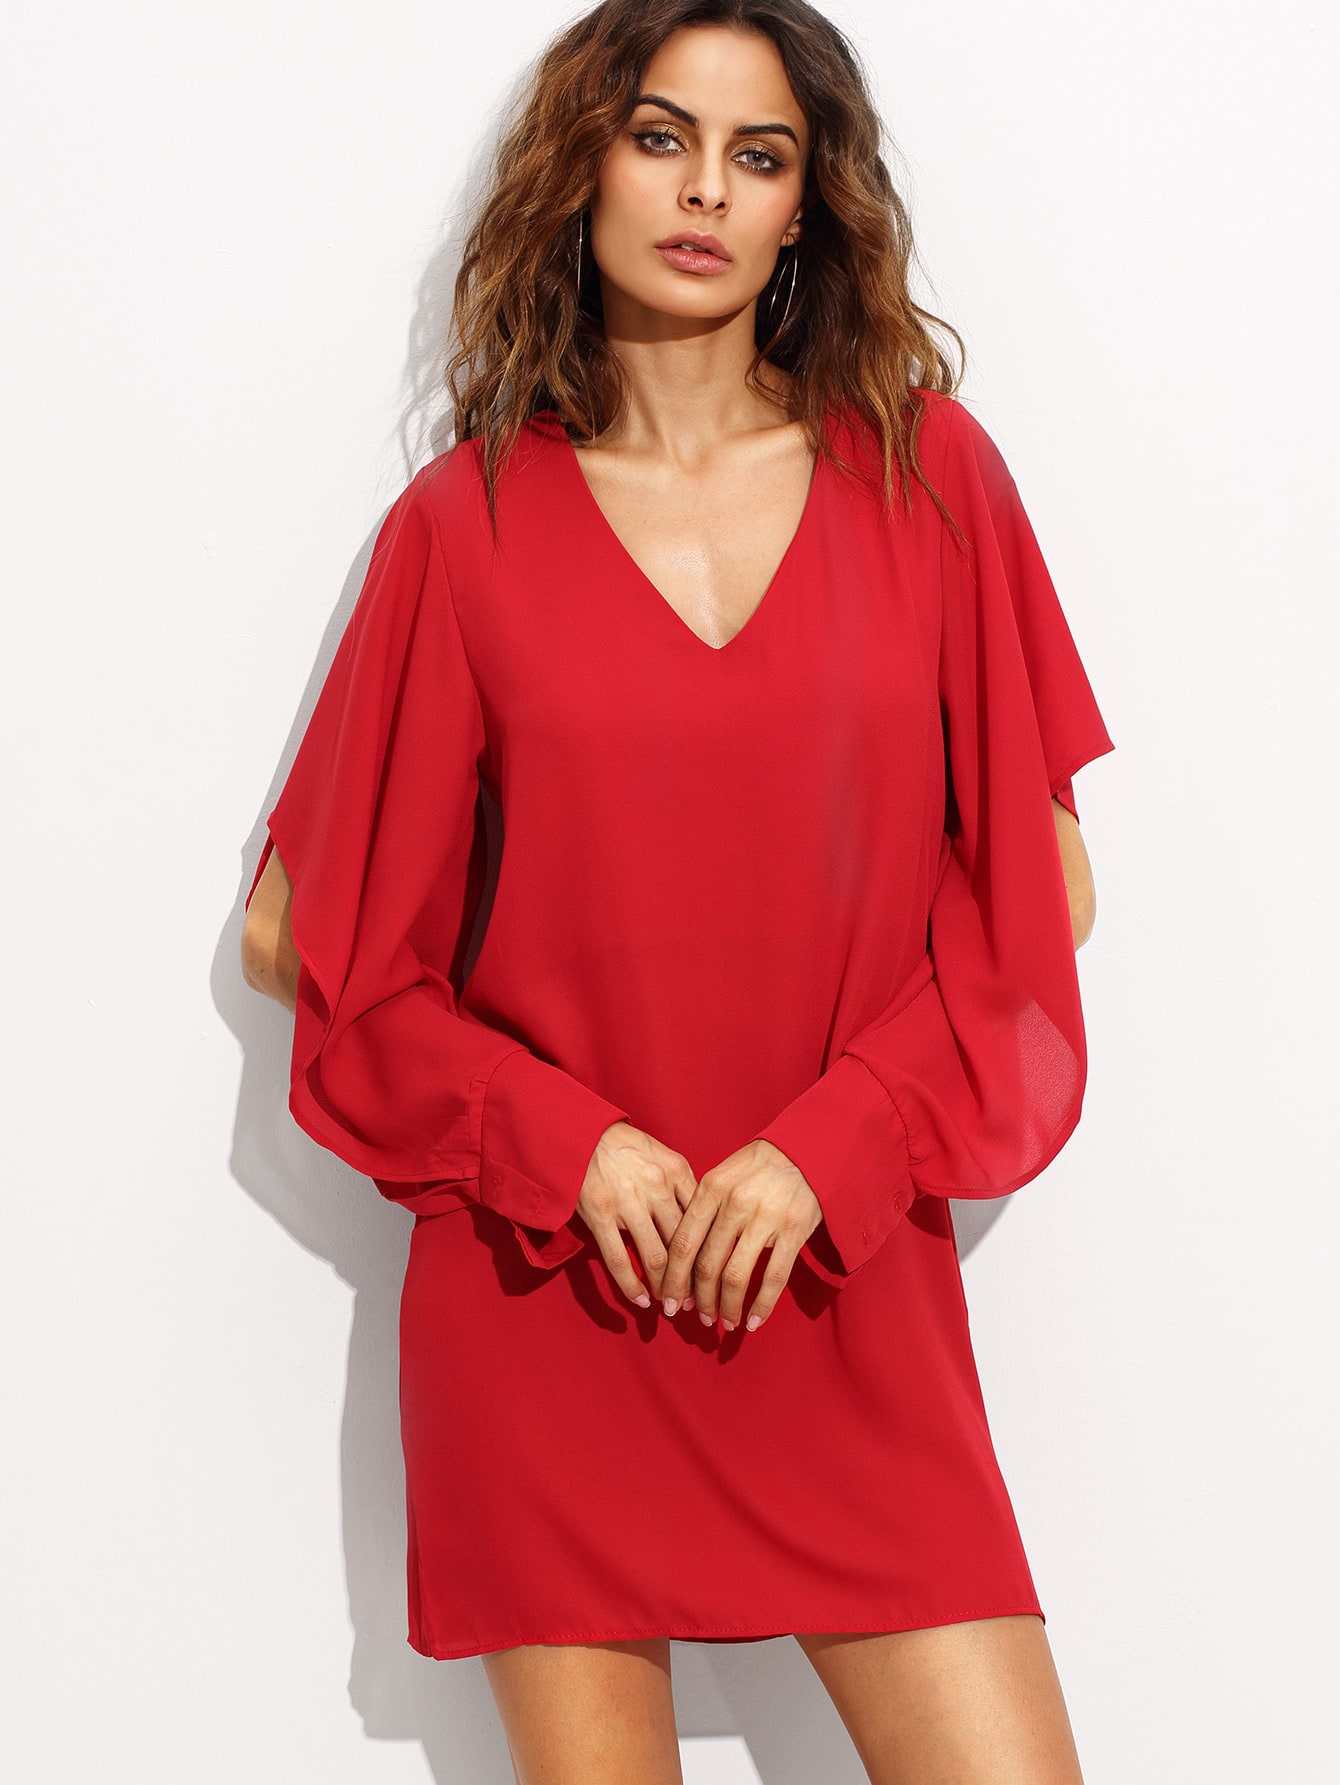 Red V Neck Slit Sleeve Chiffon Dress dress160805304